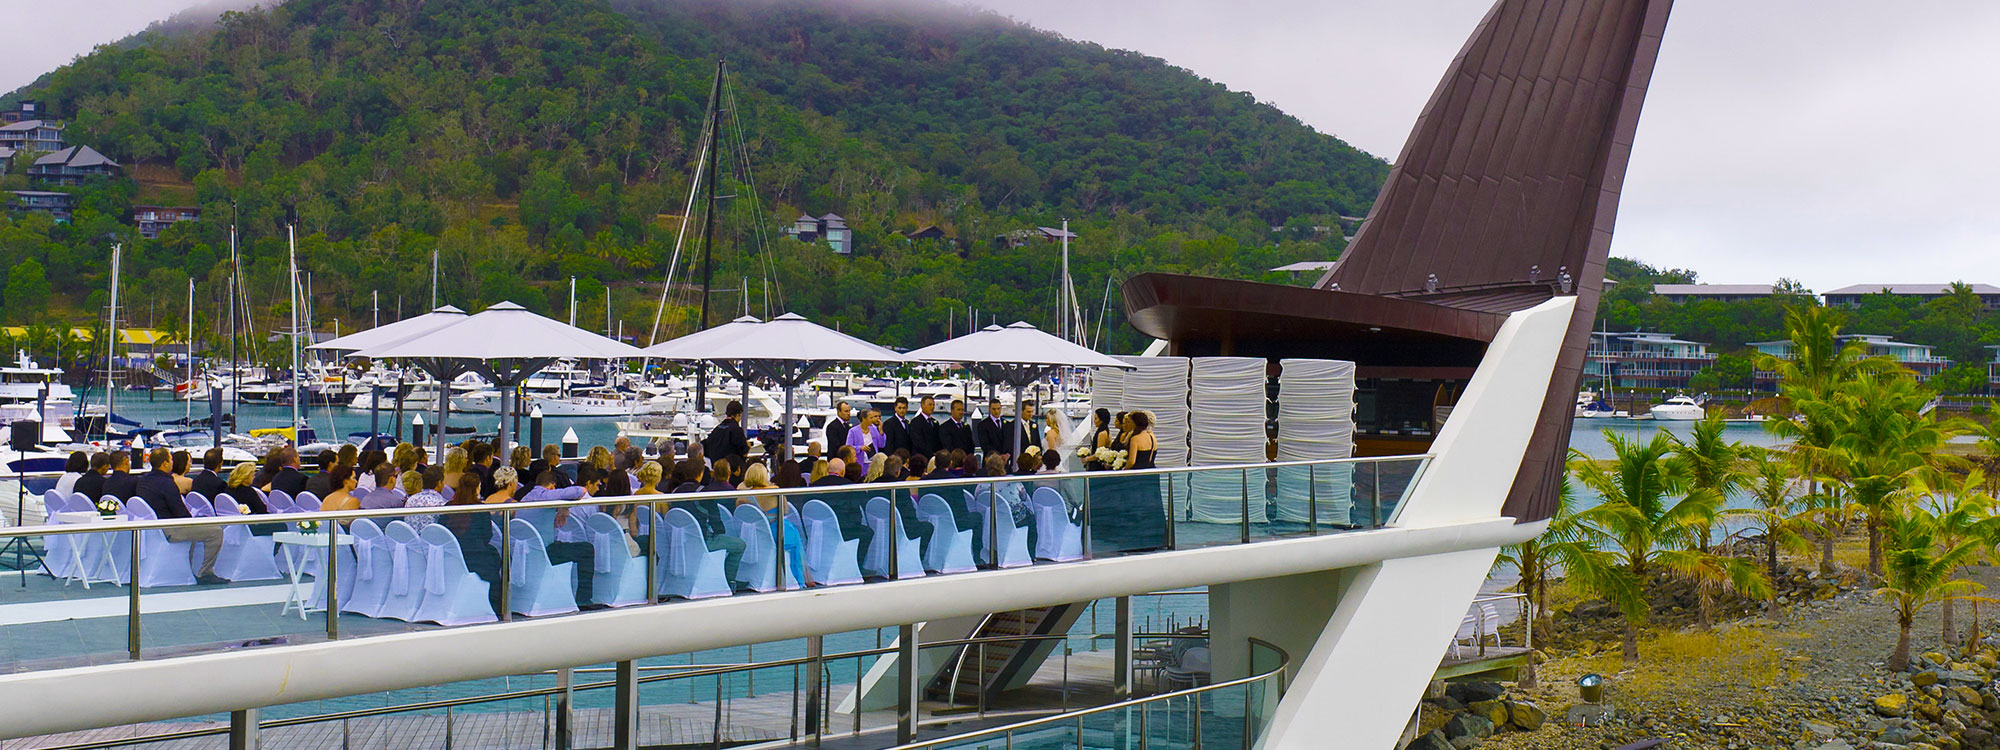 07160760-yacht-club-bommie-deck-ceremony-banner-2000